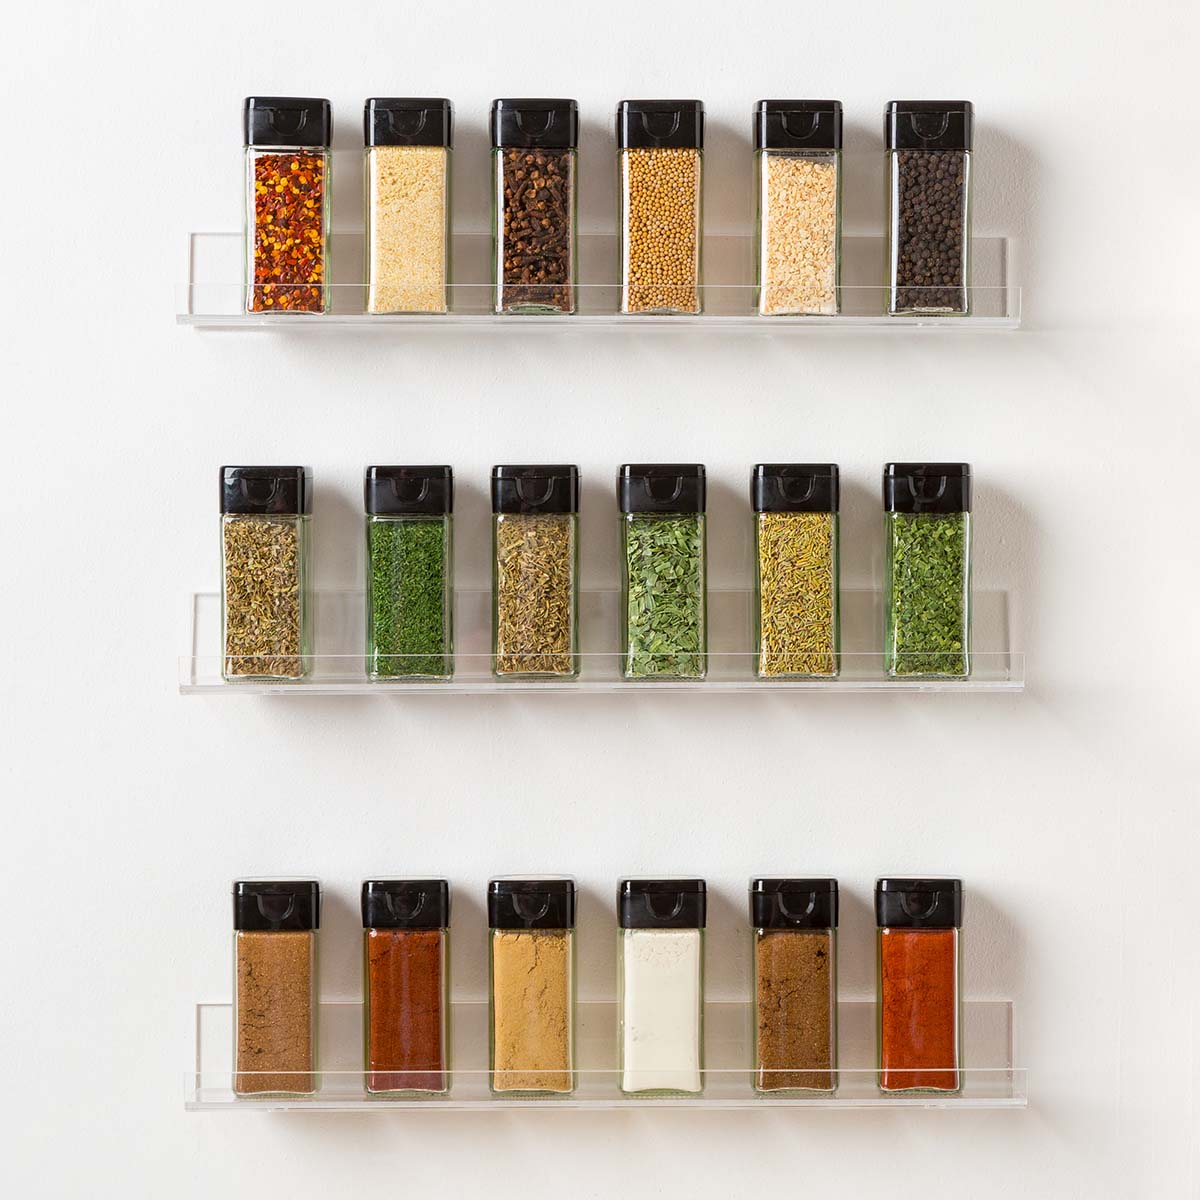 The Invisible Acrylic Spice Rack